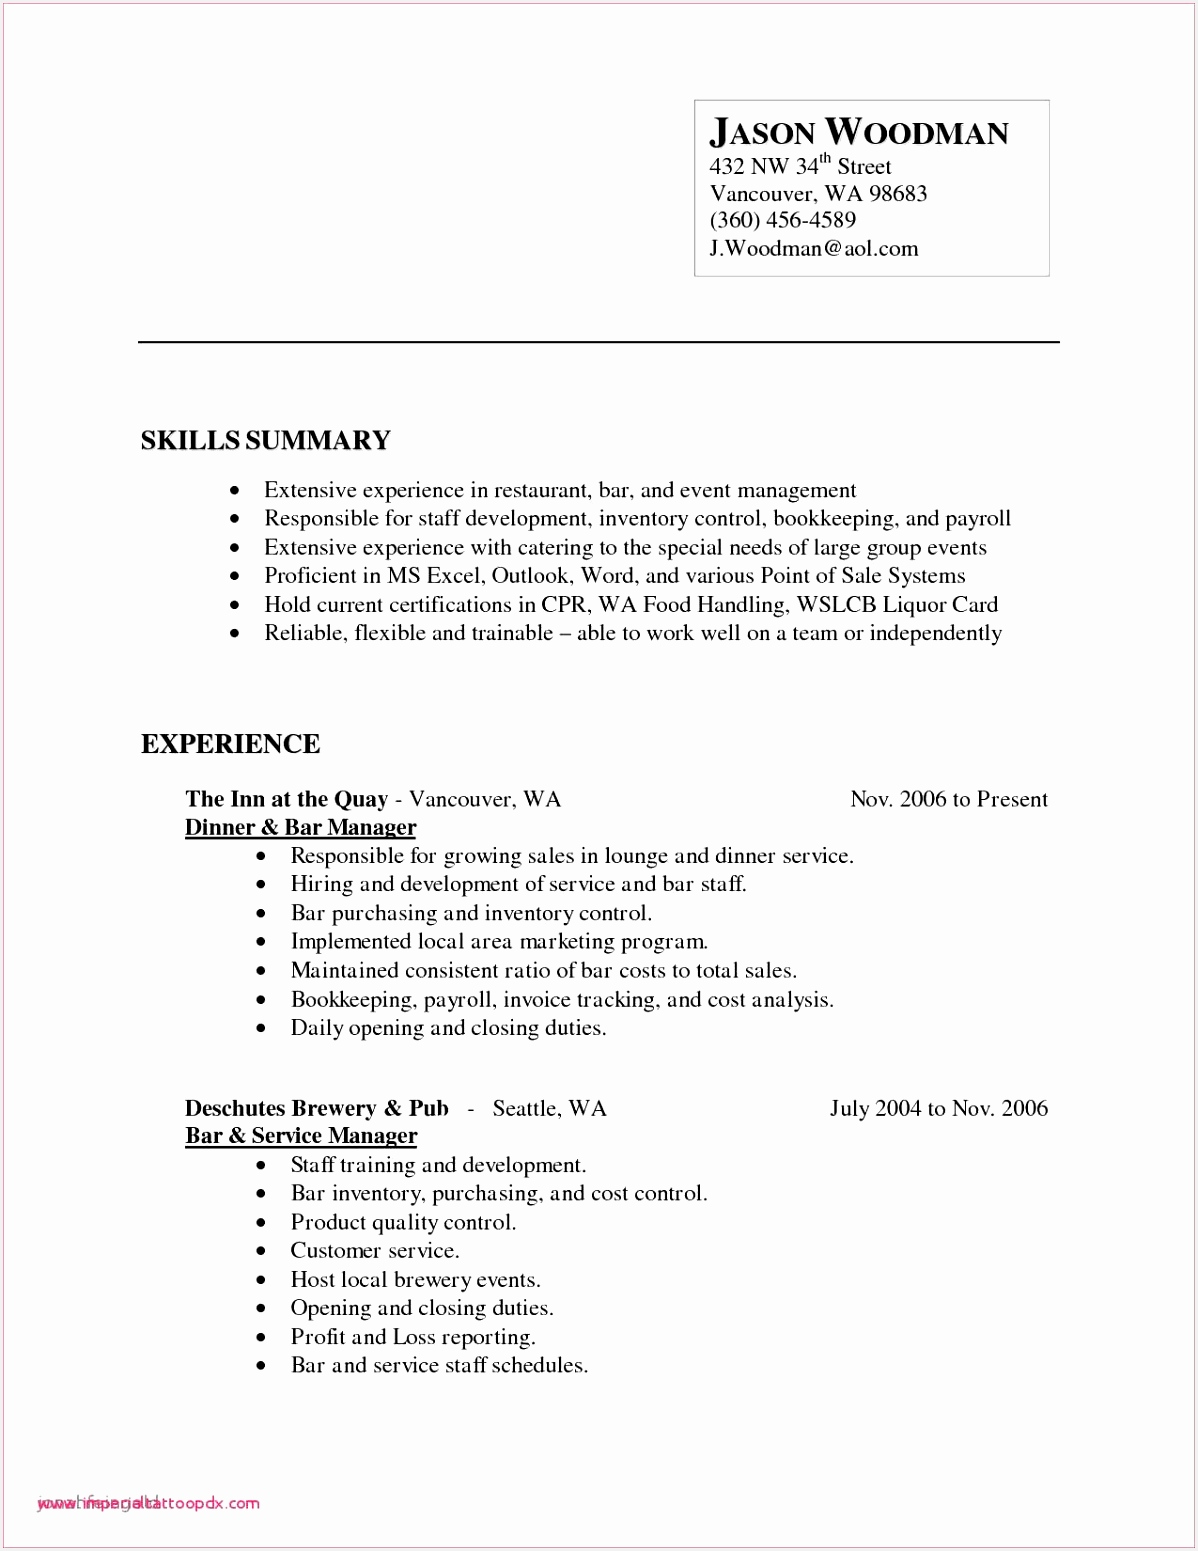 Patient Advocate Resume Gvgyw Fresh Rn Resume Sample Nursing Resume Au New Awesome Examples Resumes Of 7 Patient Advocate Resume